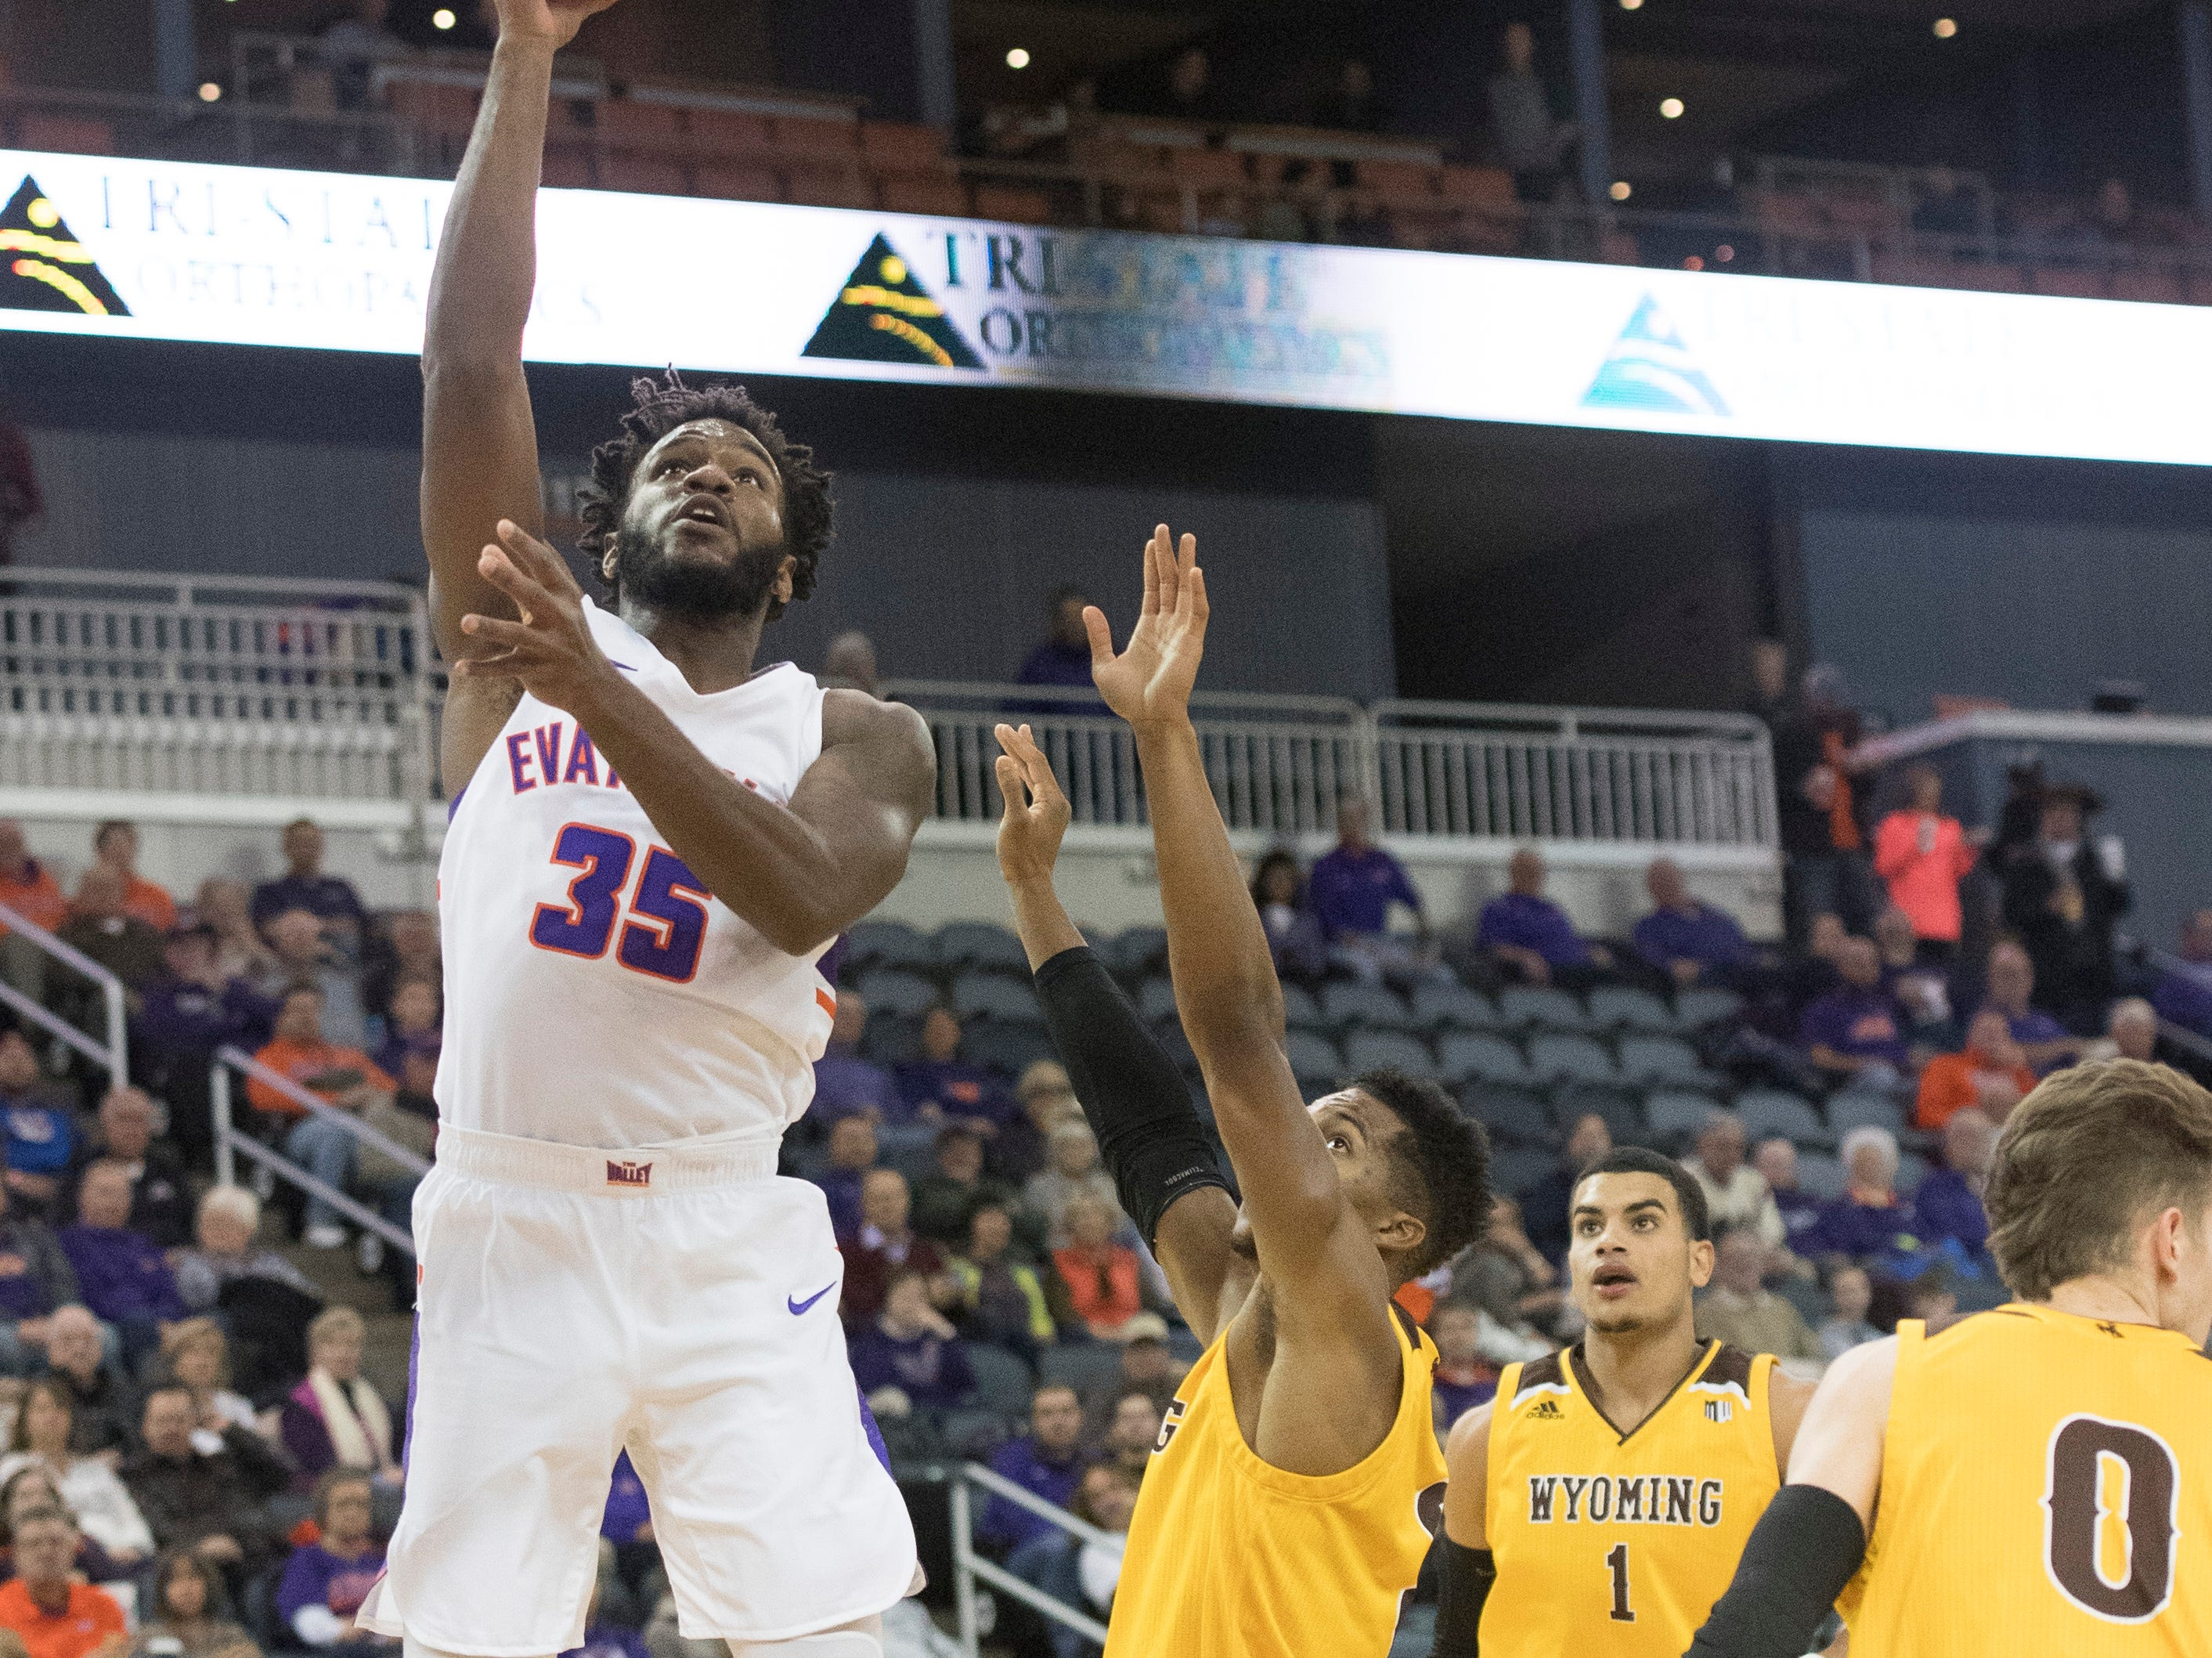 UE's John Hall (35) reaches for the basket during the UE vs Wyoming game at the Ford Center Wednesday, Nov. 28, 2018. UE won 86-76.